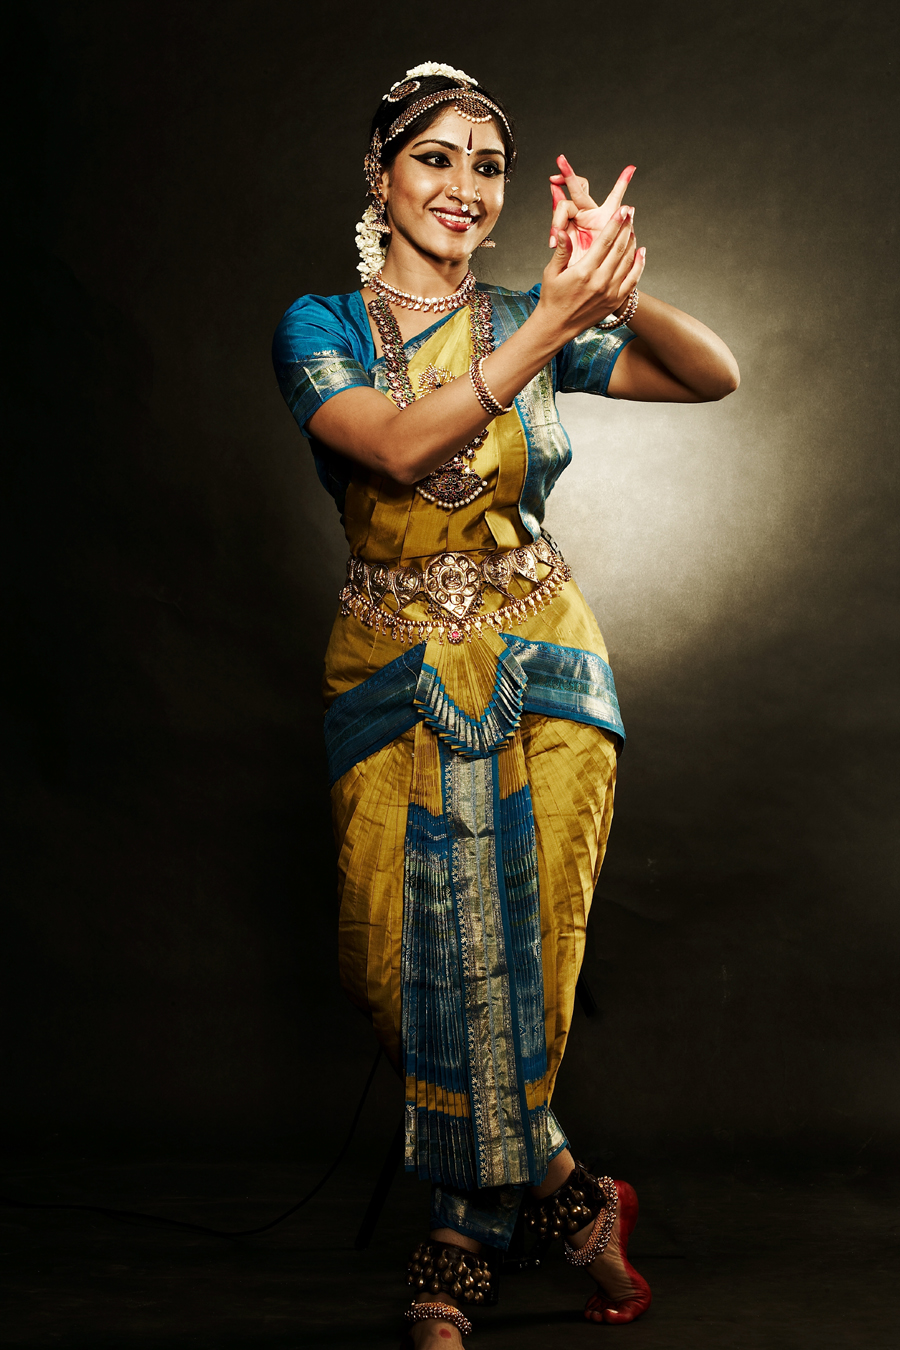 bharatanatyam dancer pose costume makeup jewelry